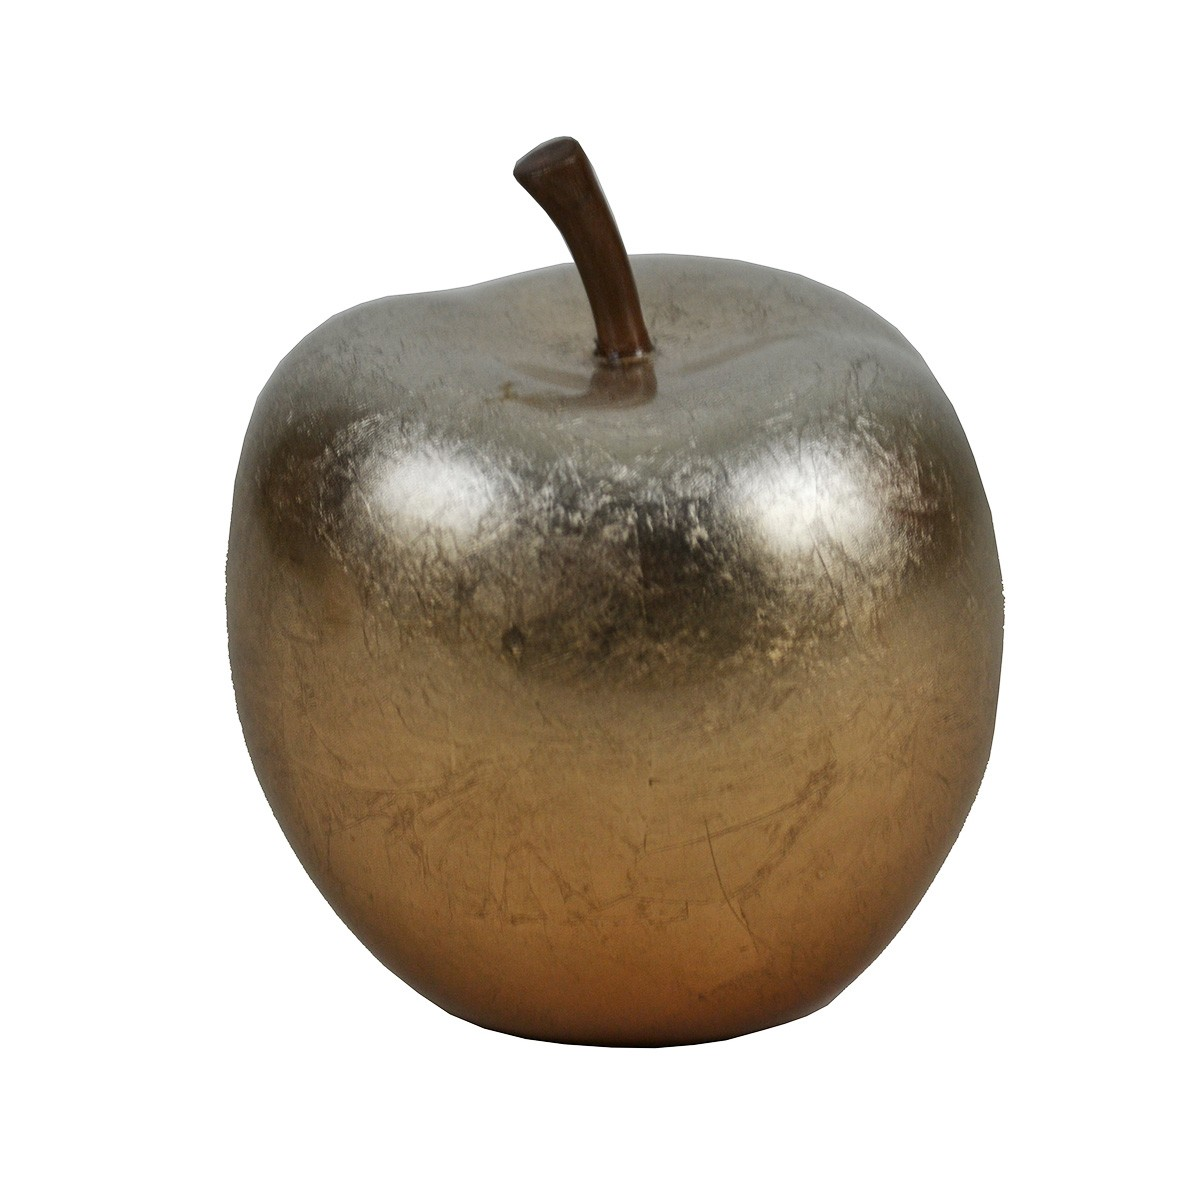 Parri Lacquered Polyresin Apple Decor, Small, Copper